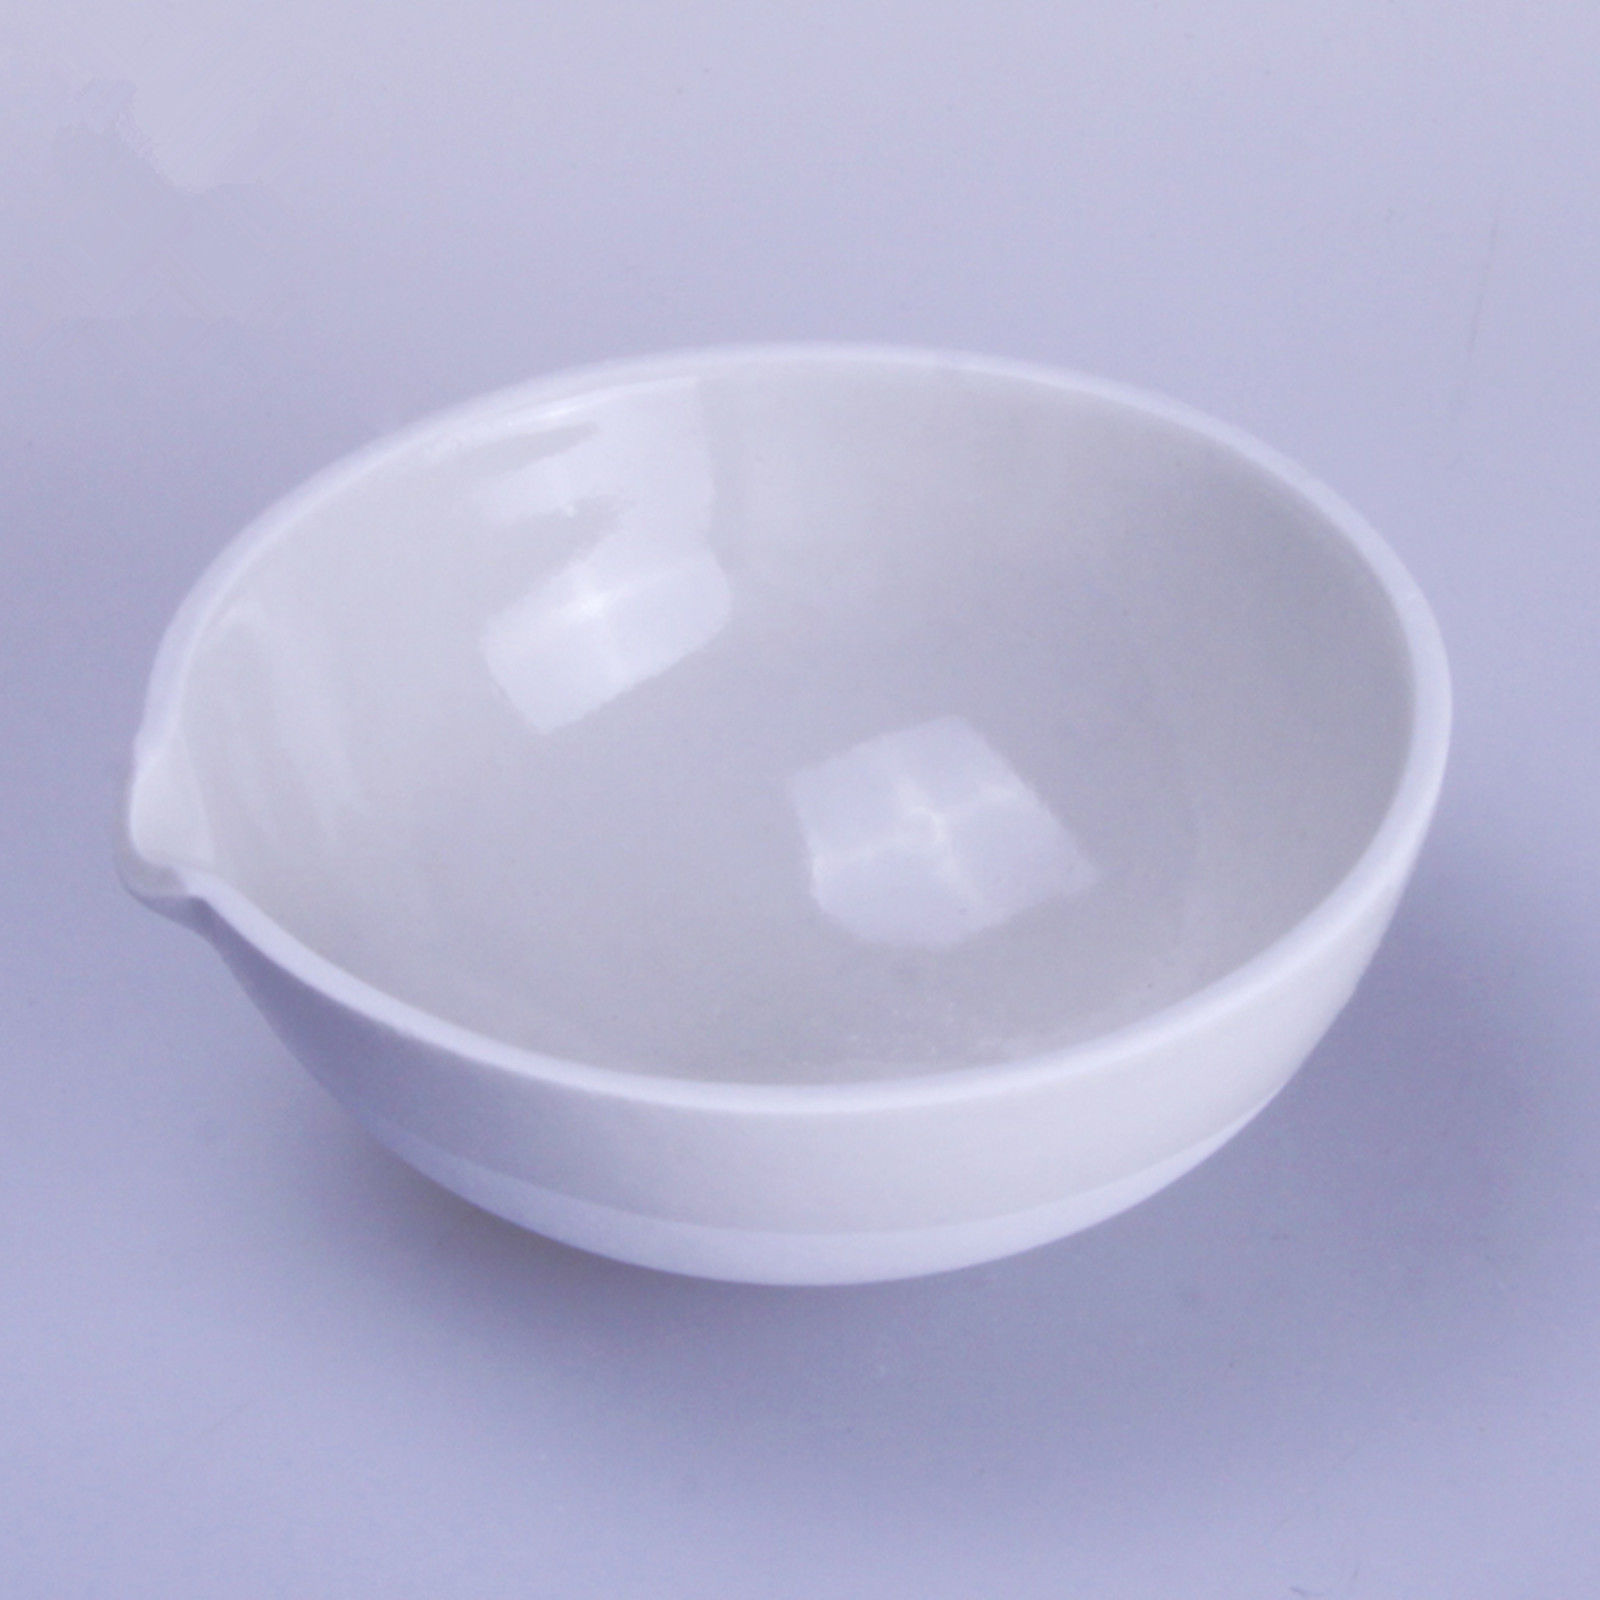 100ml,Porcelain Evaporating Dish,Round Bottom,Chemical Labware ... for Evaporating Dish Laboratory Apparatus  104xkb